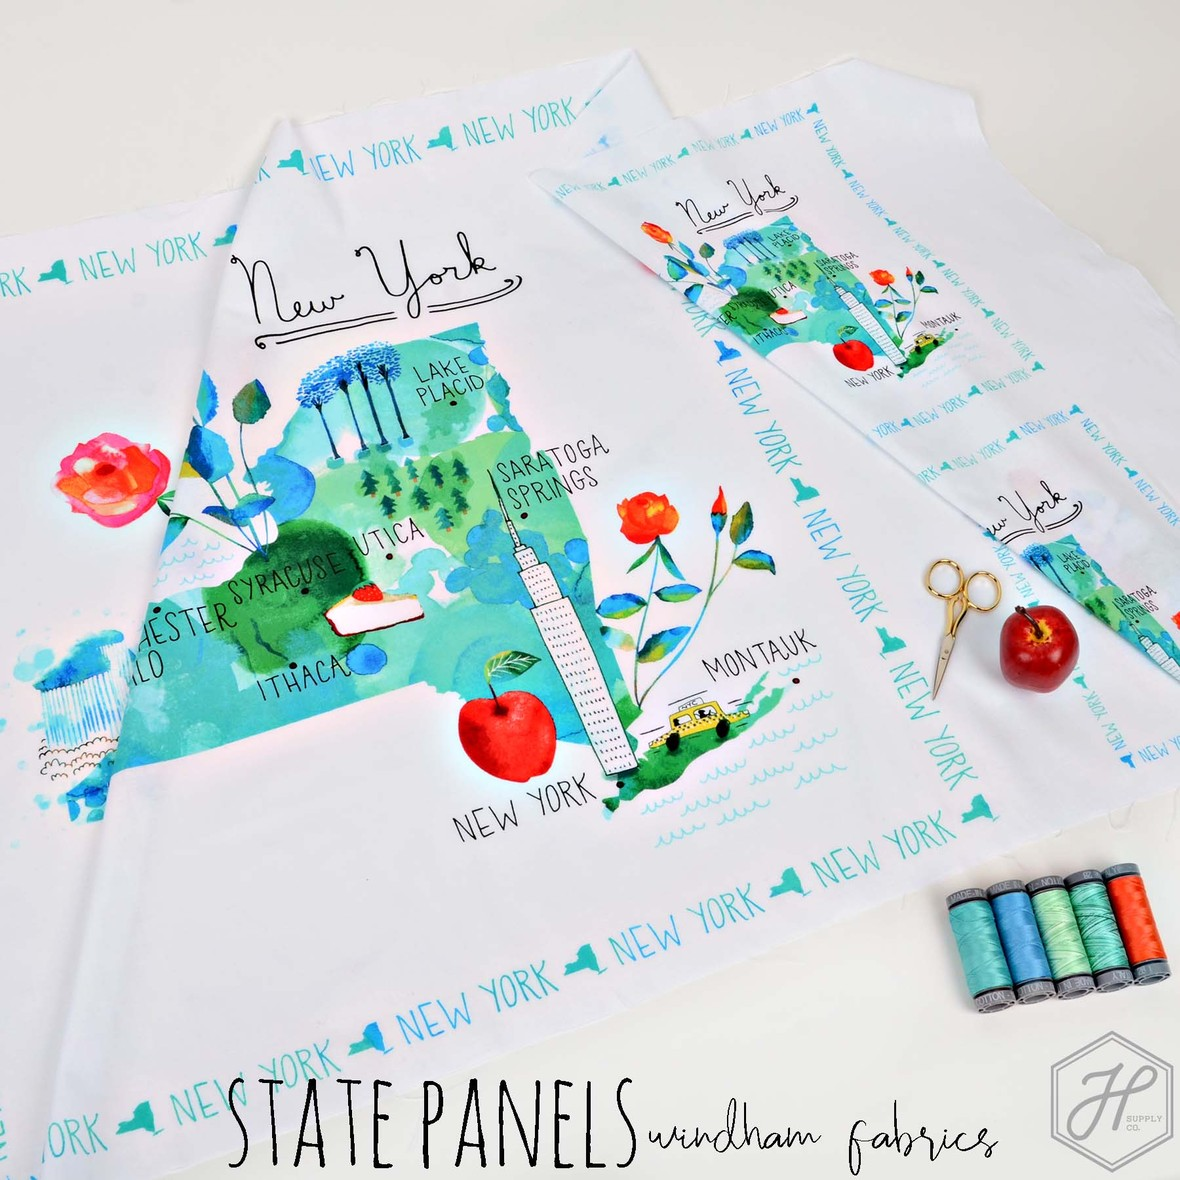 New State Panels Fabric Poster Windham at Hawthorne Supply Co